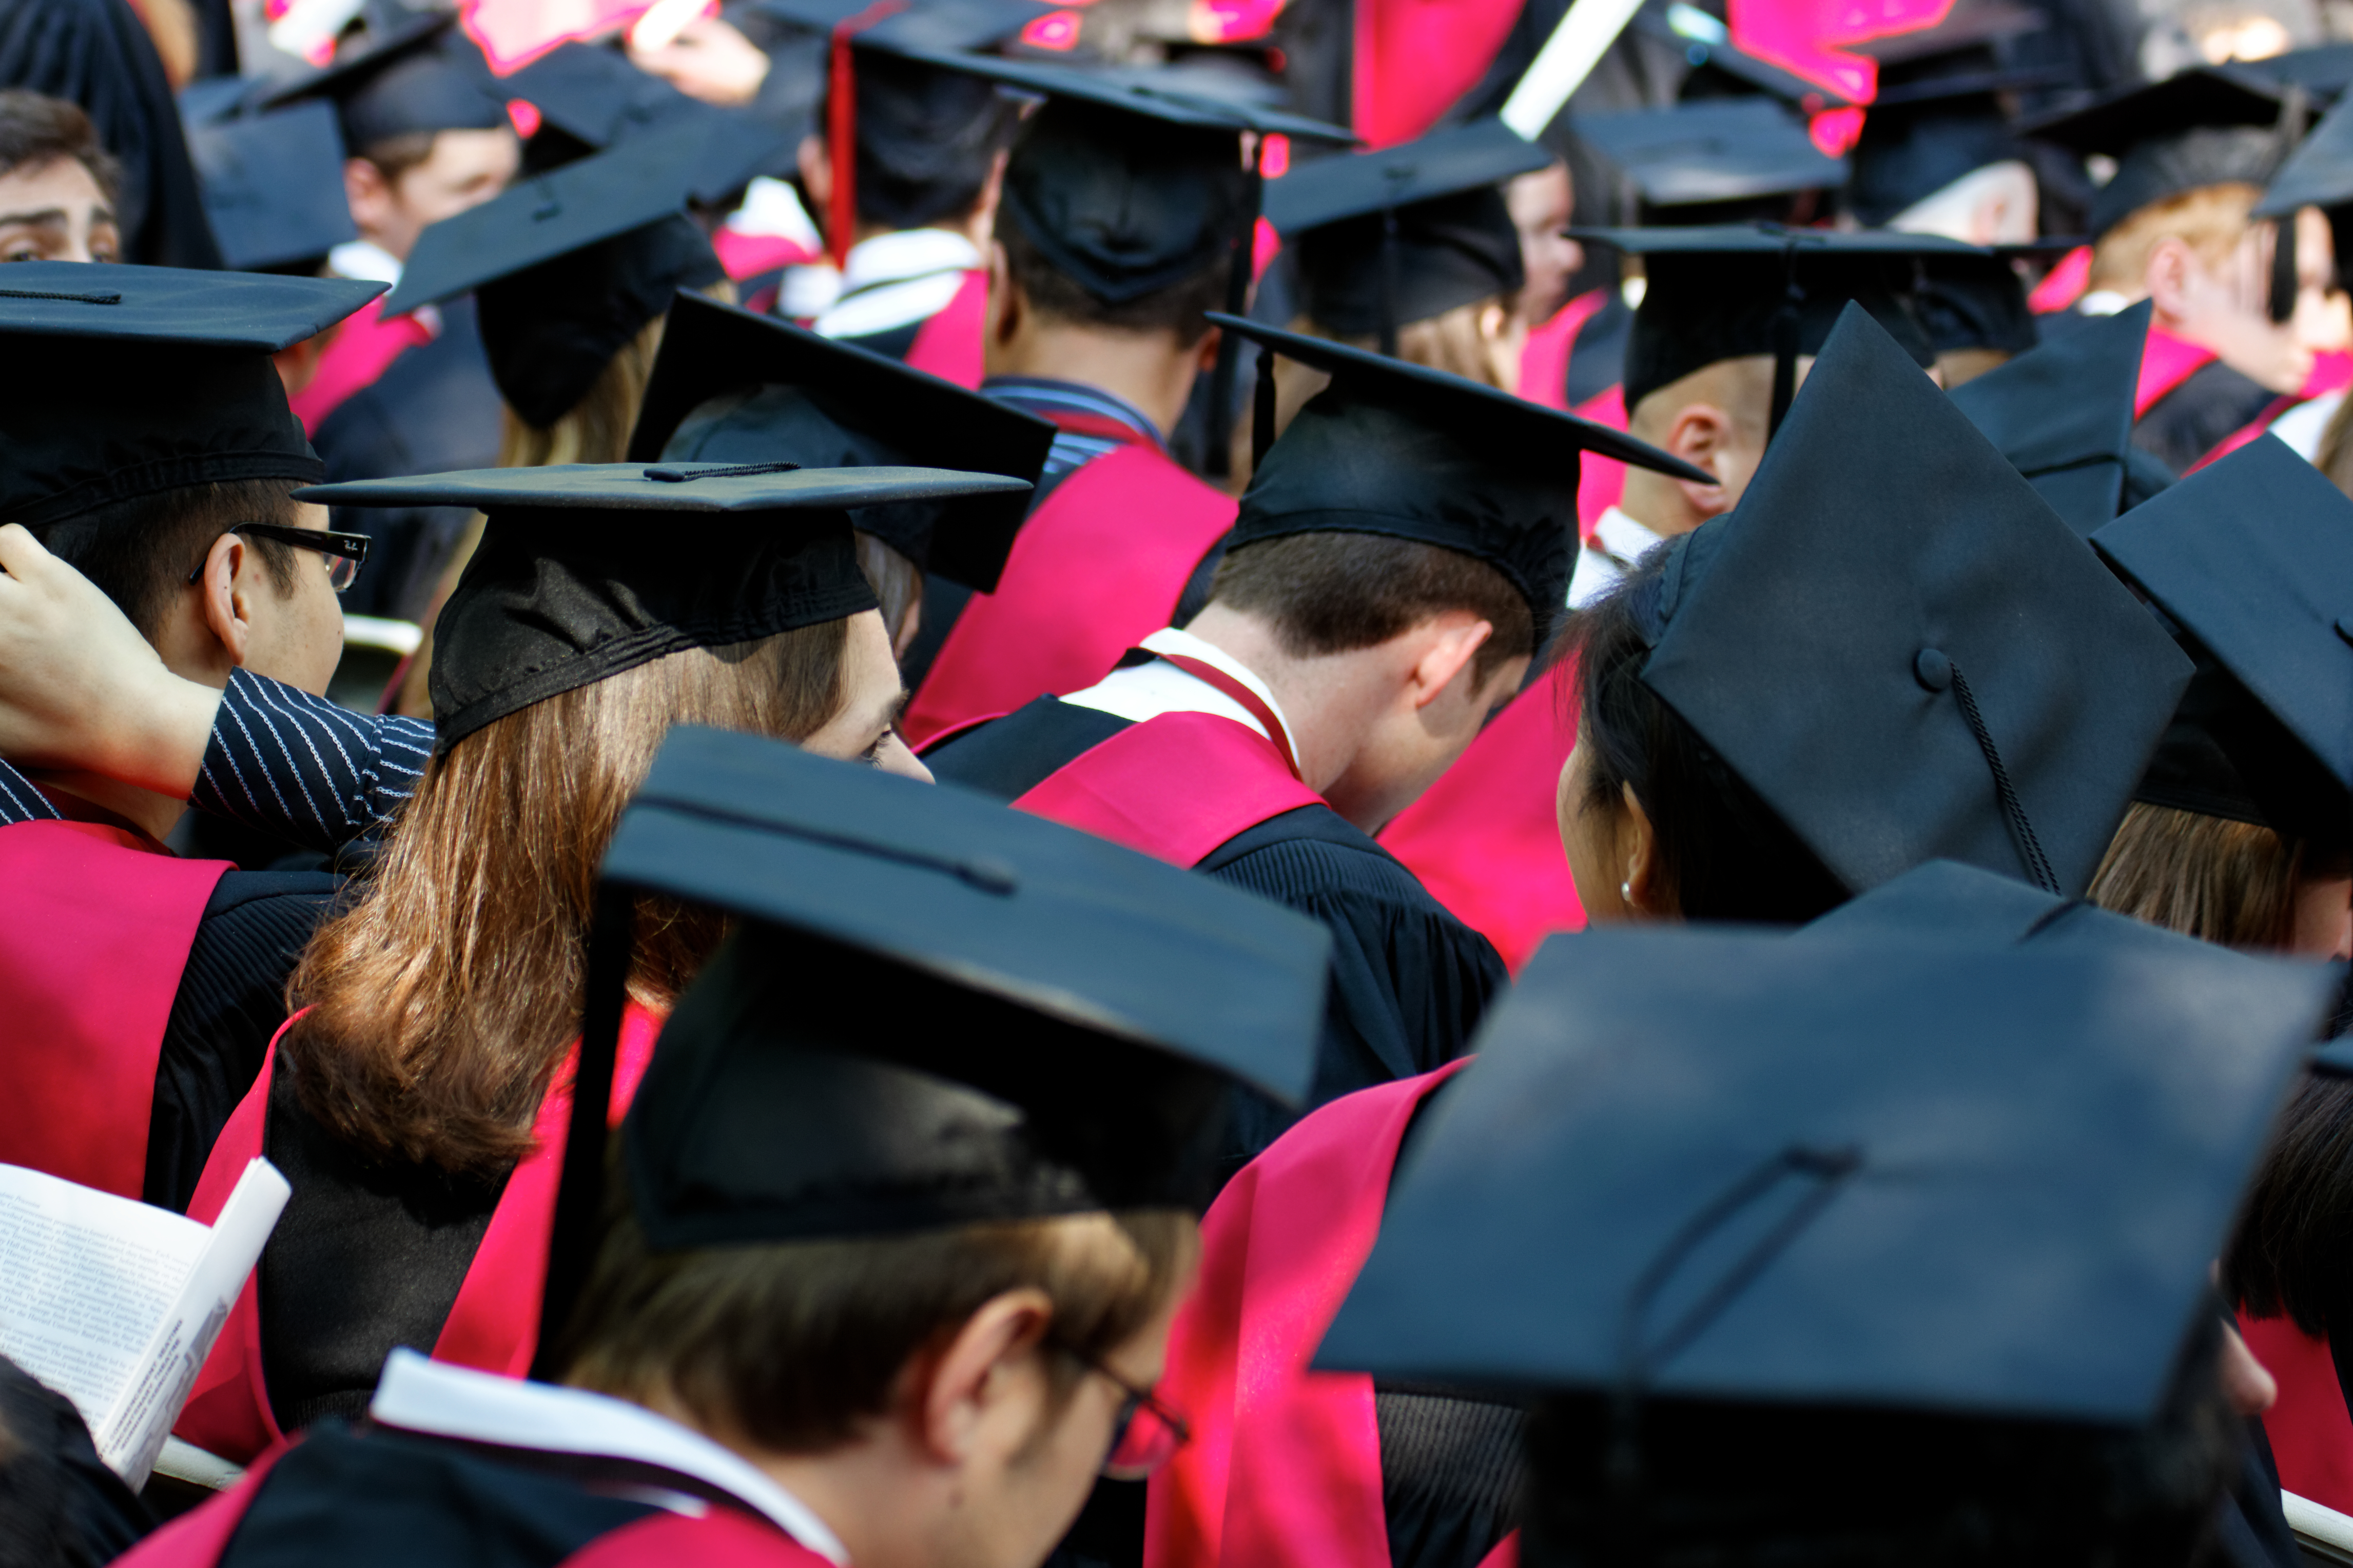 Pictured are Harvard students waiting to graduate. SHUTTERSTOCK/ Jannis Tobias Werner